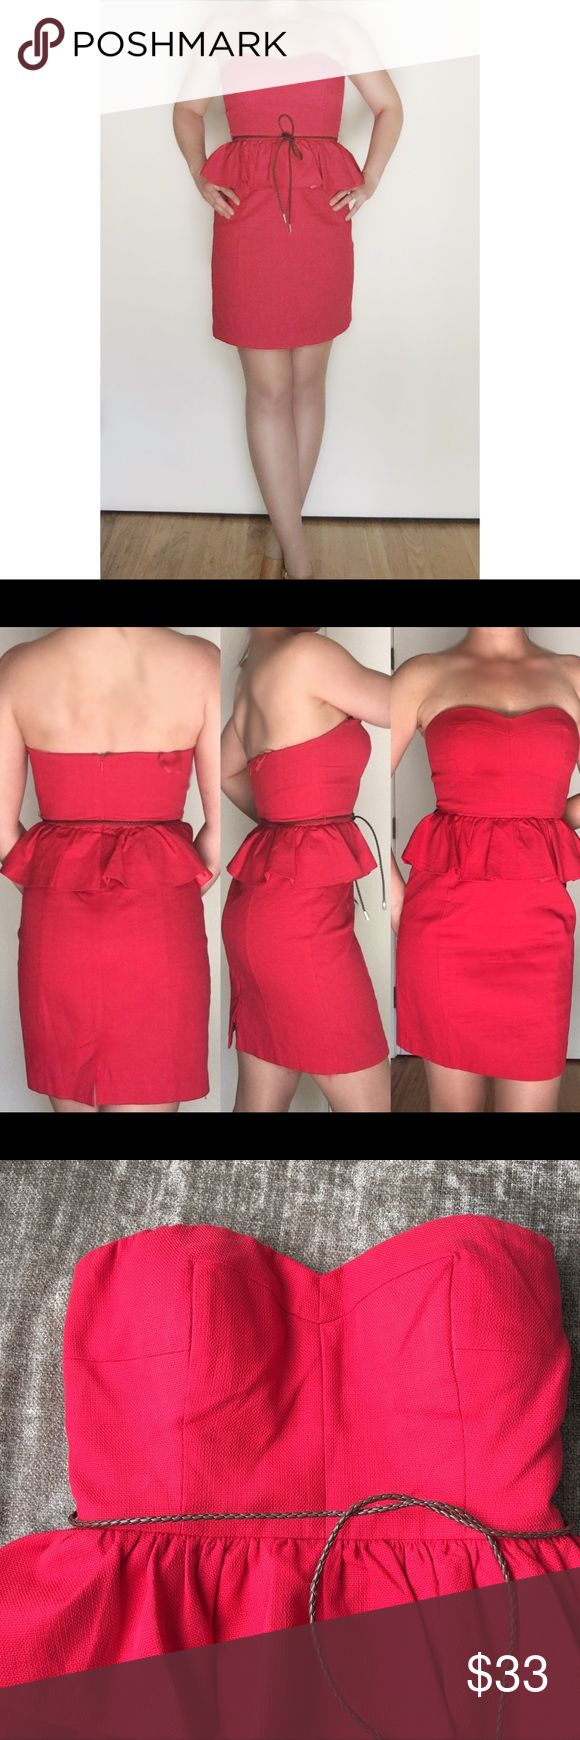 Anthropologie Aryn K. Red peplum dress belted Sz S Aryn K. For Anthropologie red peplum mini dress includes brown weave leather belt that ties as a knot or bow. Darling red dress. Flattering. Nice thick linen type material. Cherry celandine red. Peplum creates illusion of tiny waist and also makes the bootie pop! Size small. Will add measurements asap I'm 5'6 34-26-35 memodeling. Anthropologie brand. Charming but sexy. Anthropologie Dresses Mini